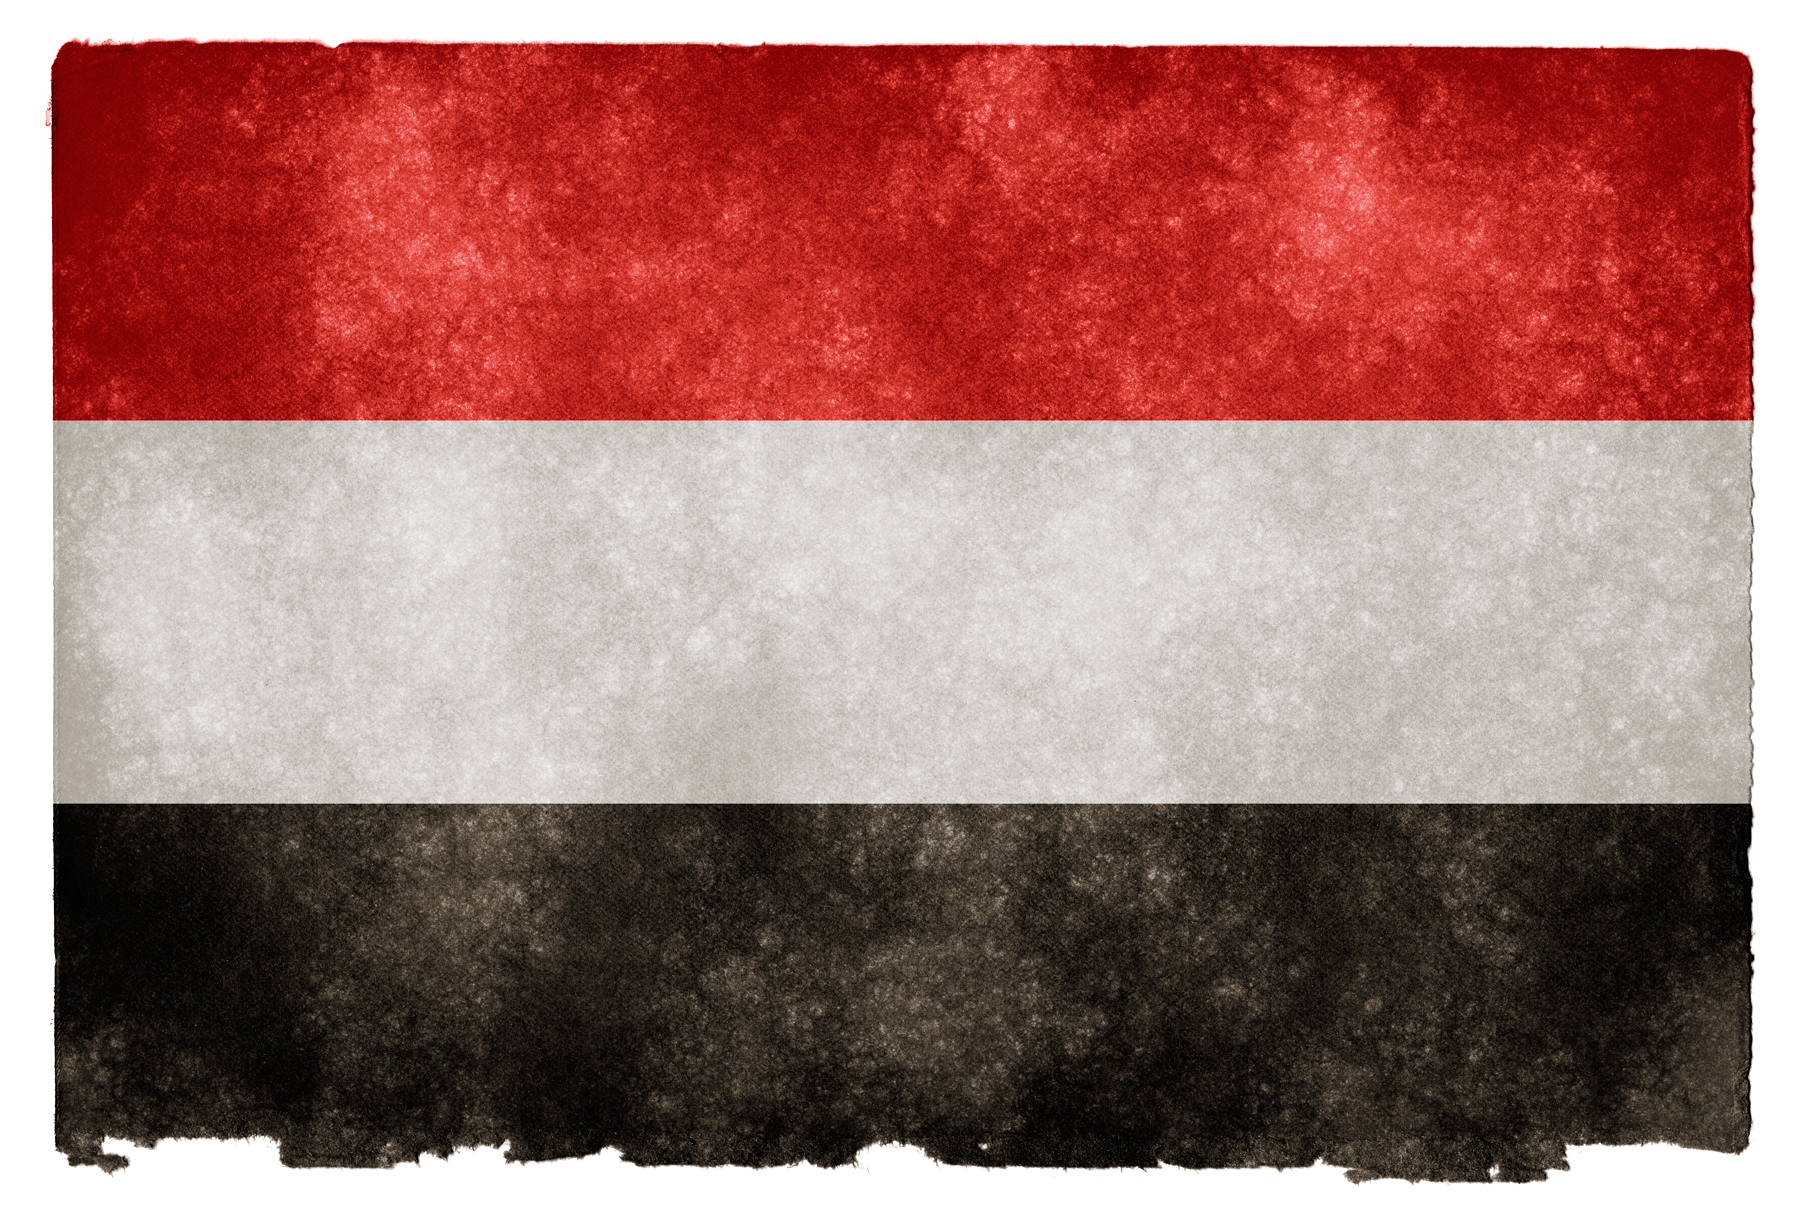 Yemen Grunge Flag, Aged, Red, Middle-east, Middle-eastern, HQ Photo